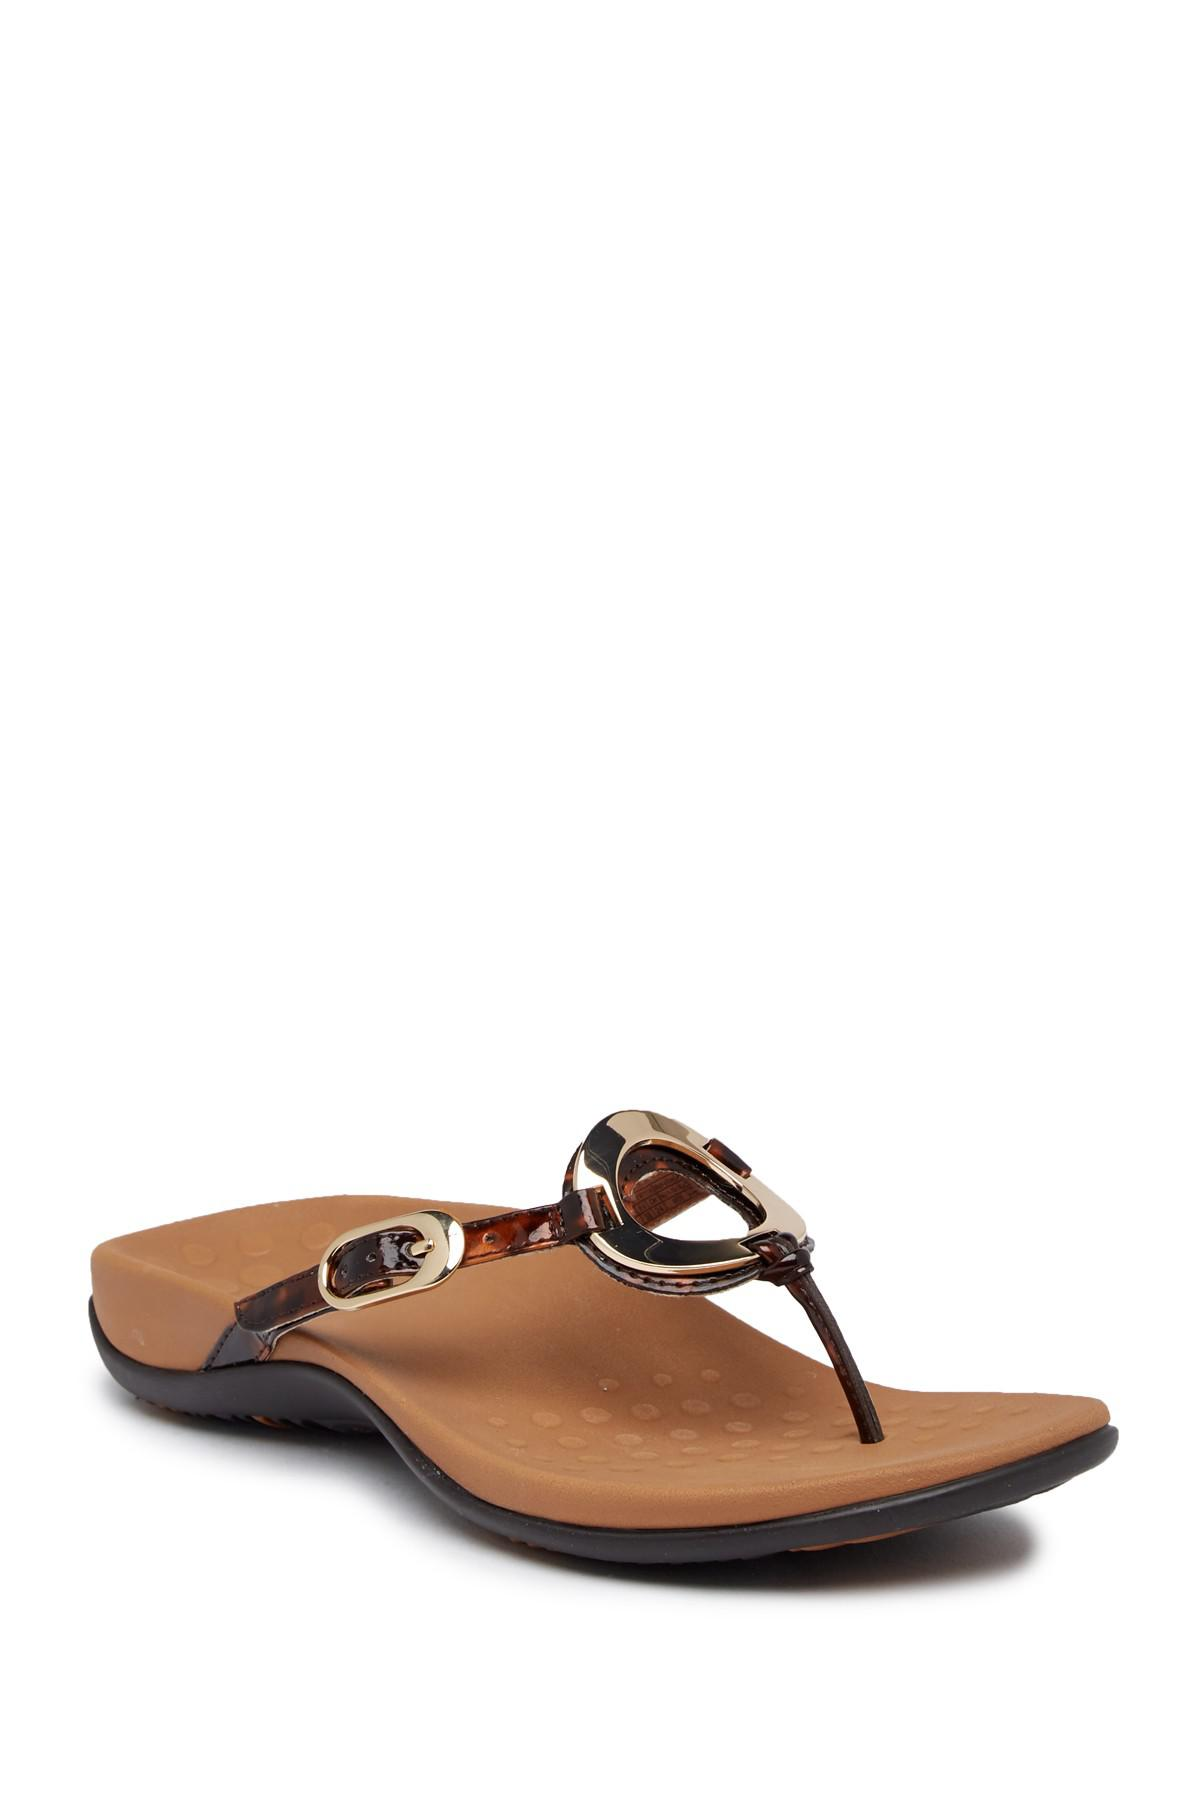 Vionic Farra Sandal - Wide Width Available 8Nid2